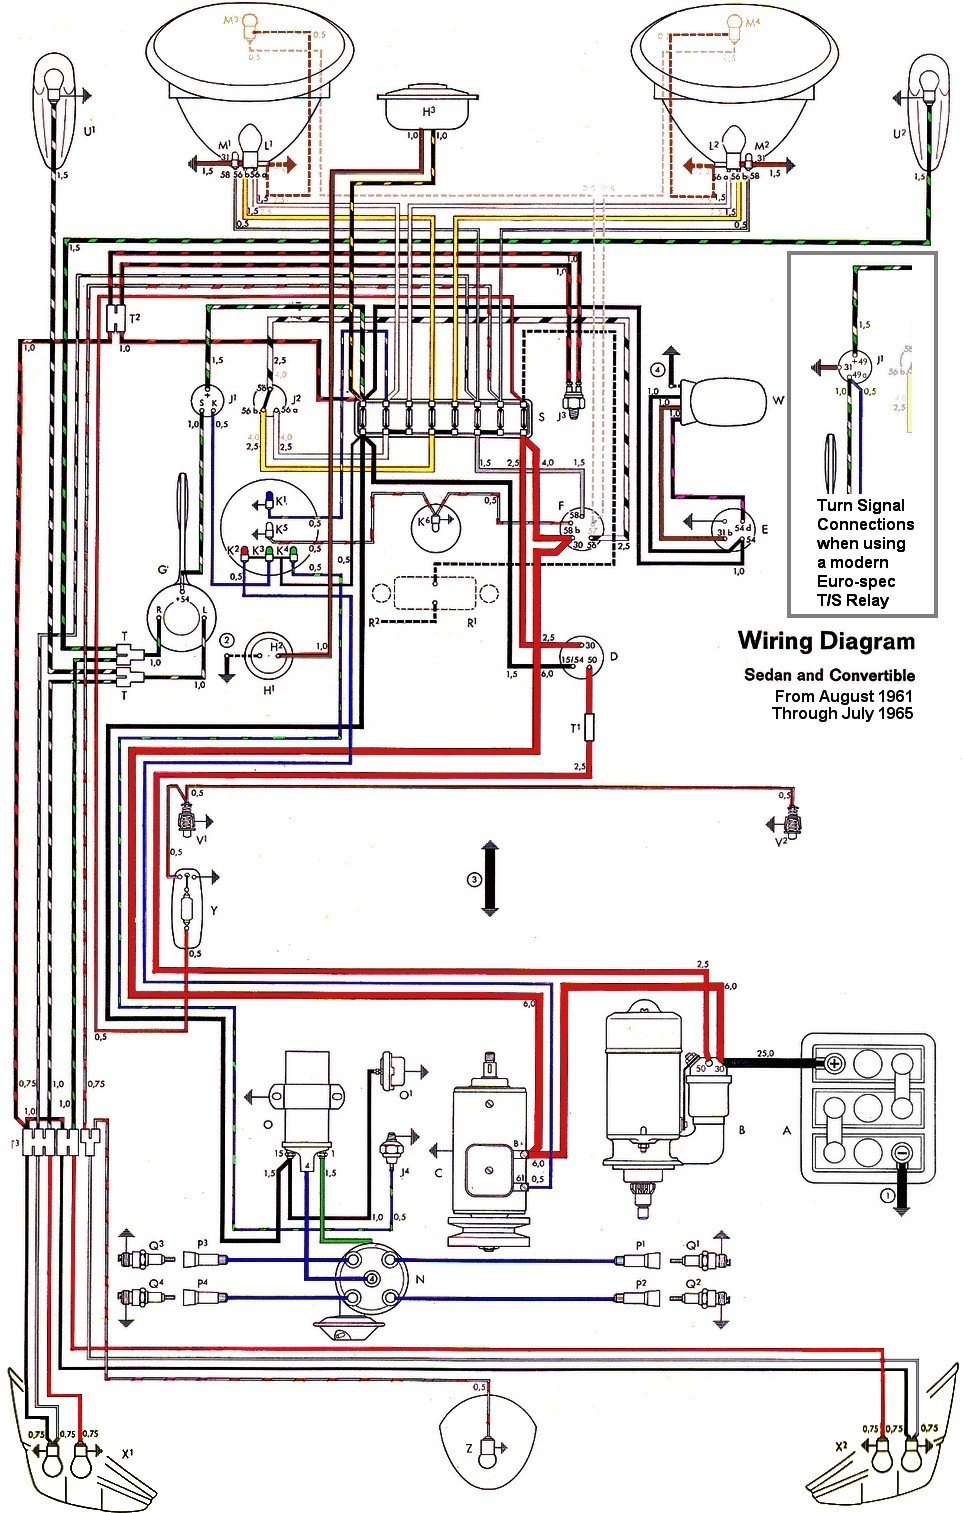 thesamba com type 1 wiring diagrams rh thesamba com 1970 vw beetle engine wiring diagram 1970 vw beetle engine wiring diagram